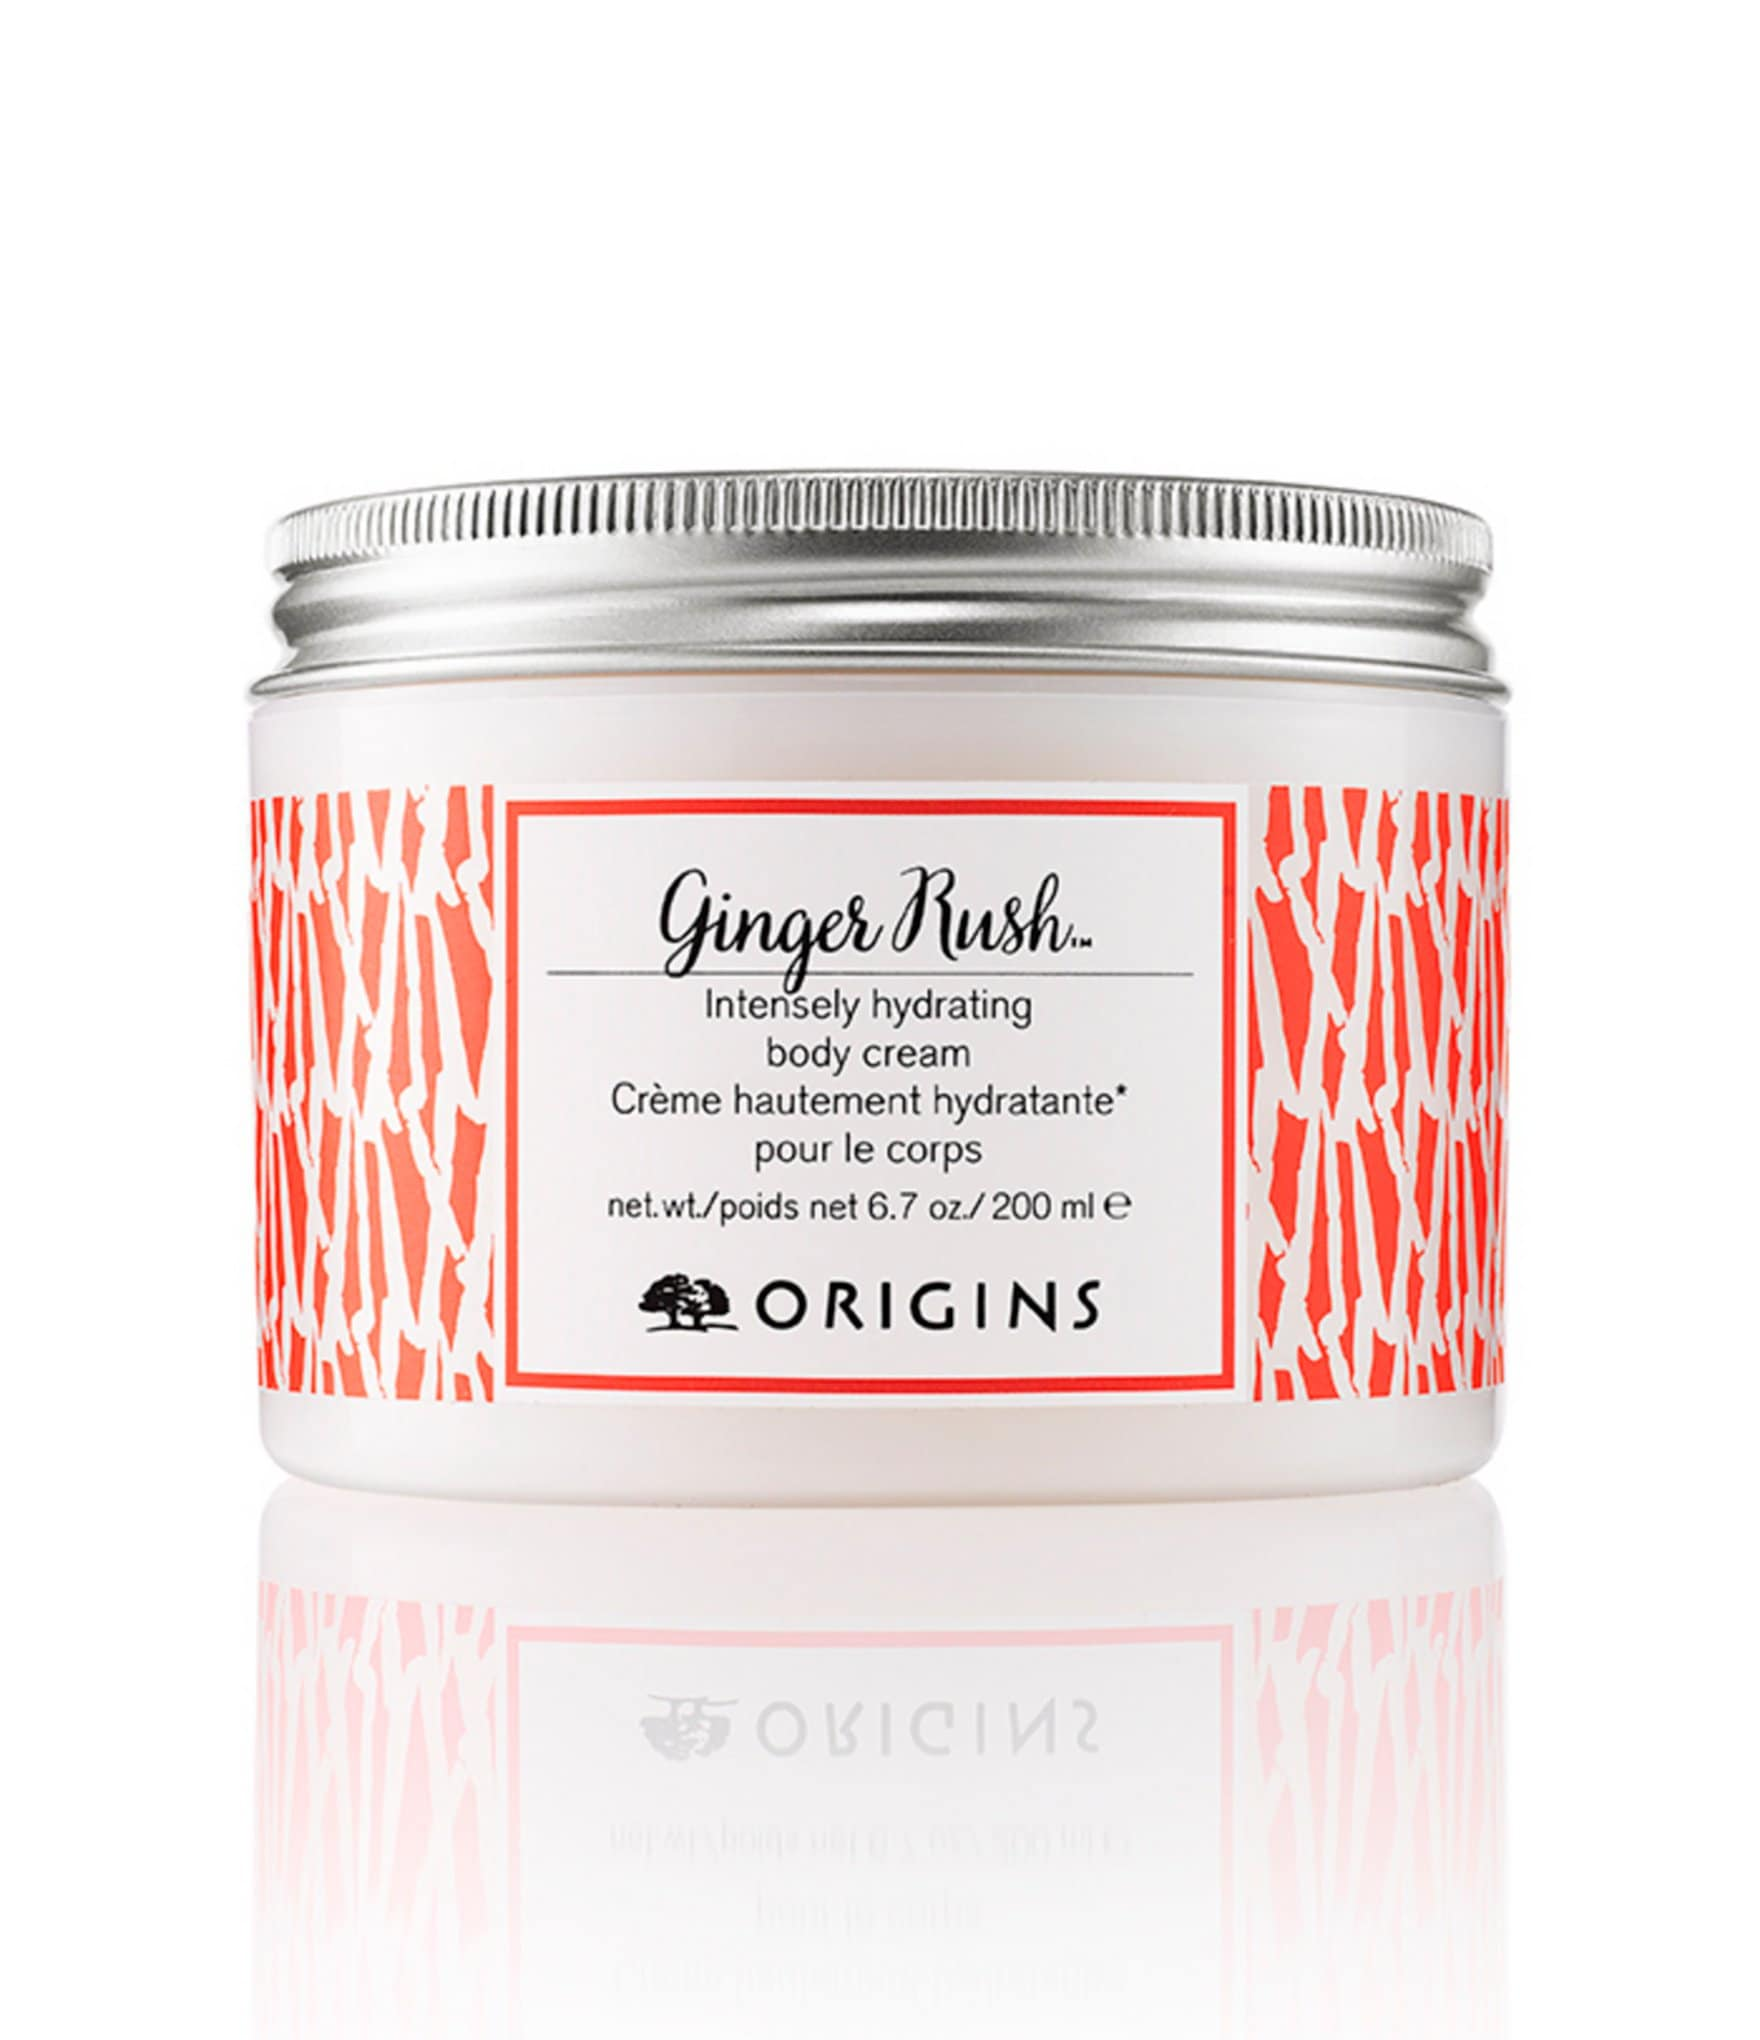 Origins Ginger Rush Intensely Hydrating Body Cream | Dillards